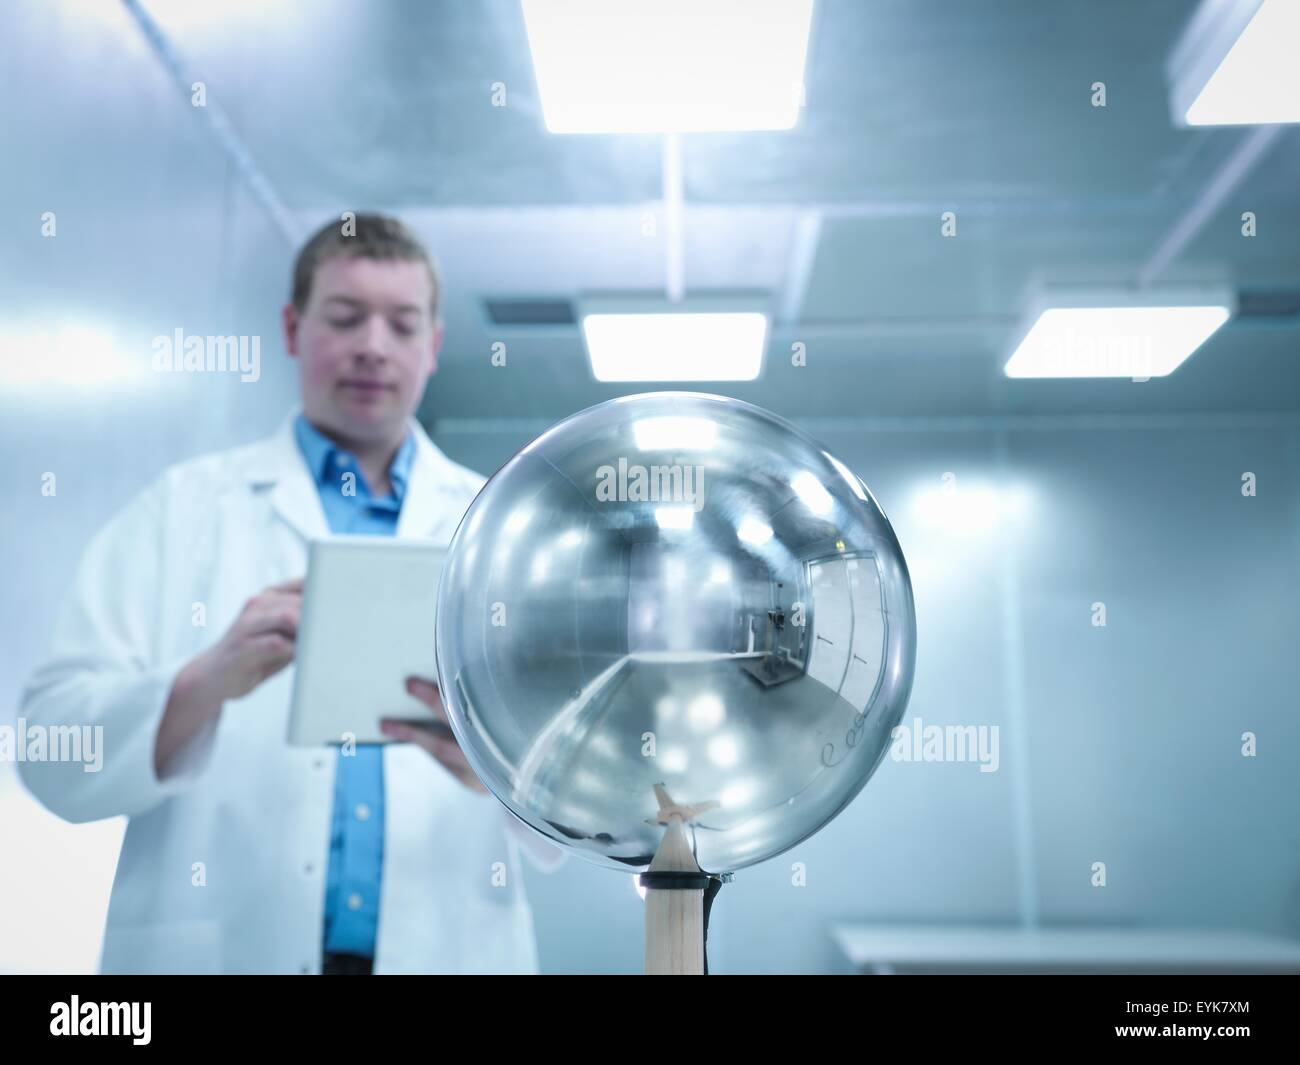 Engineer carrying out electromagnetic field (EMF) testing of electronic lighting using Van Der Hoofden Head - Stock Image